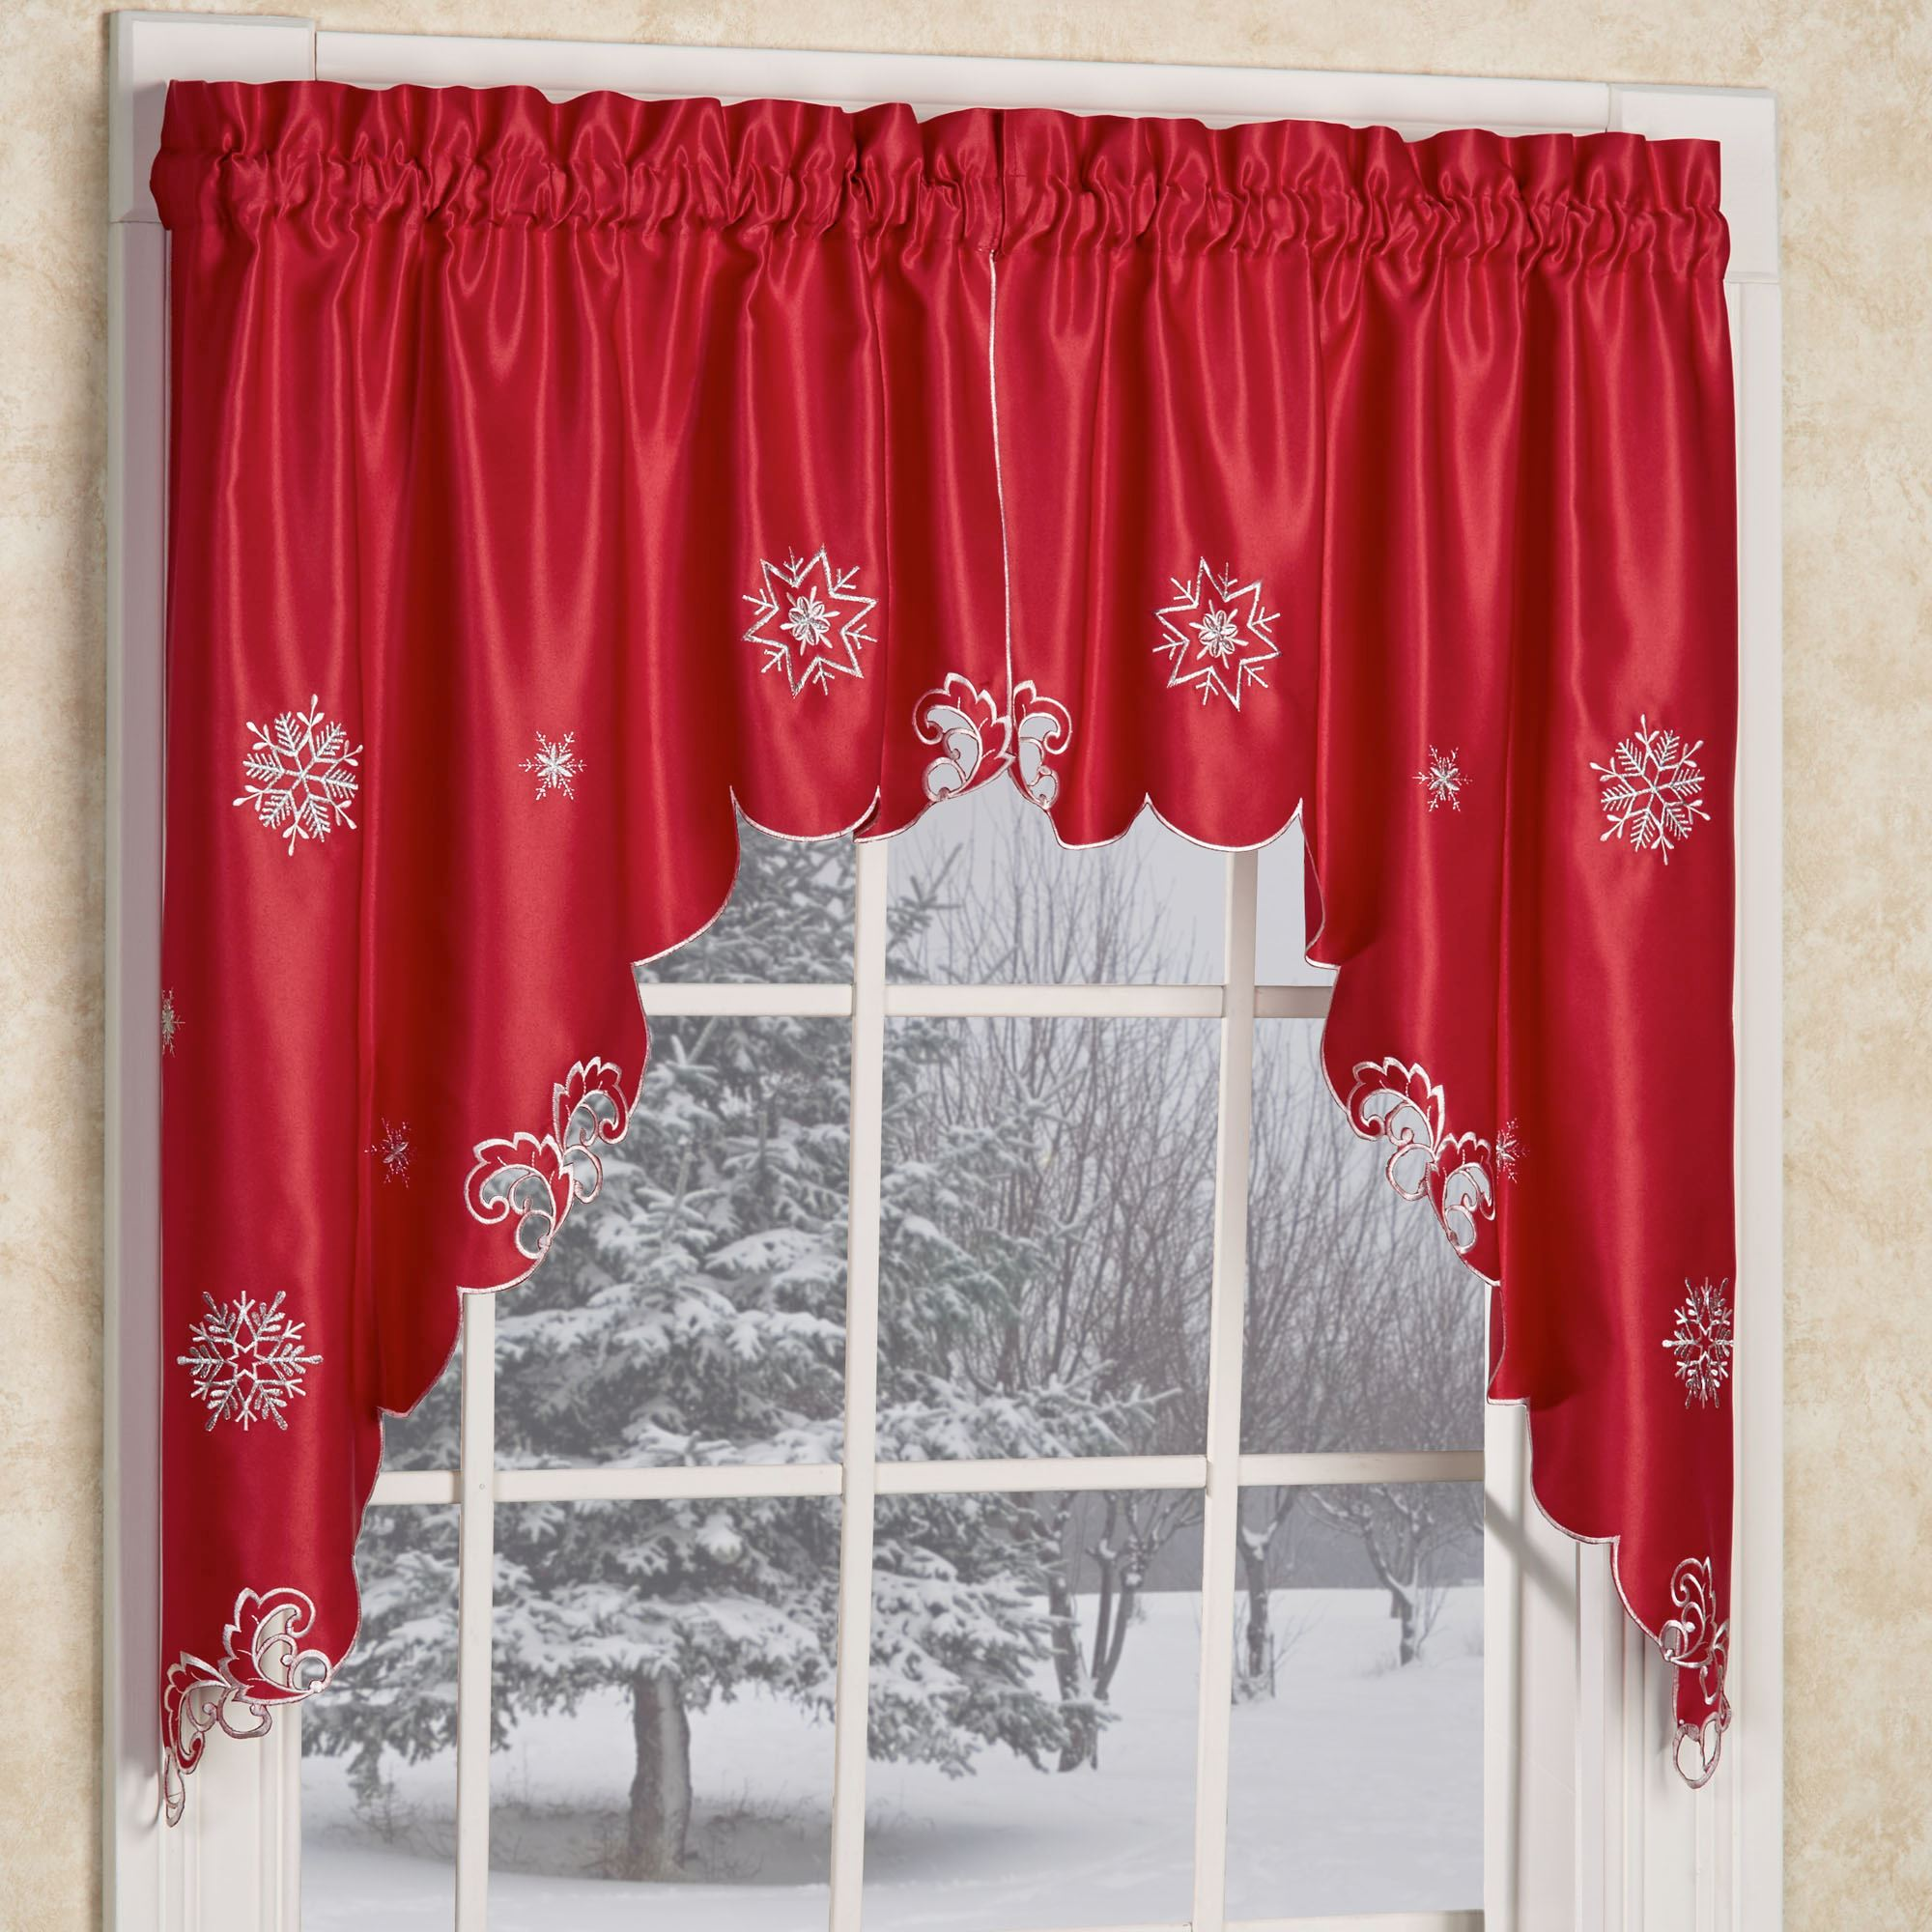 Metallic Snowflake Swag Valance Pair Red 60 X 38